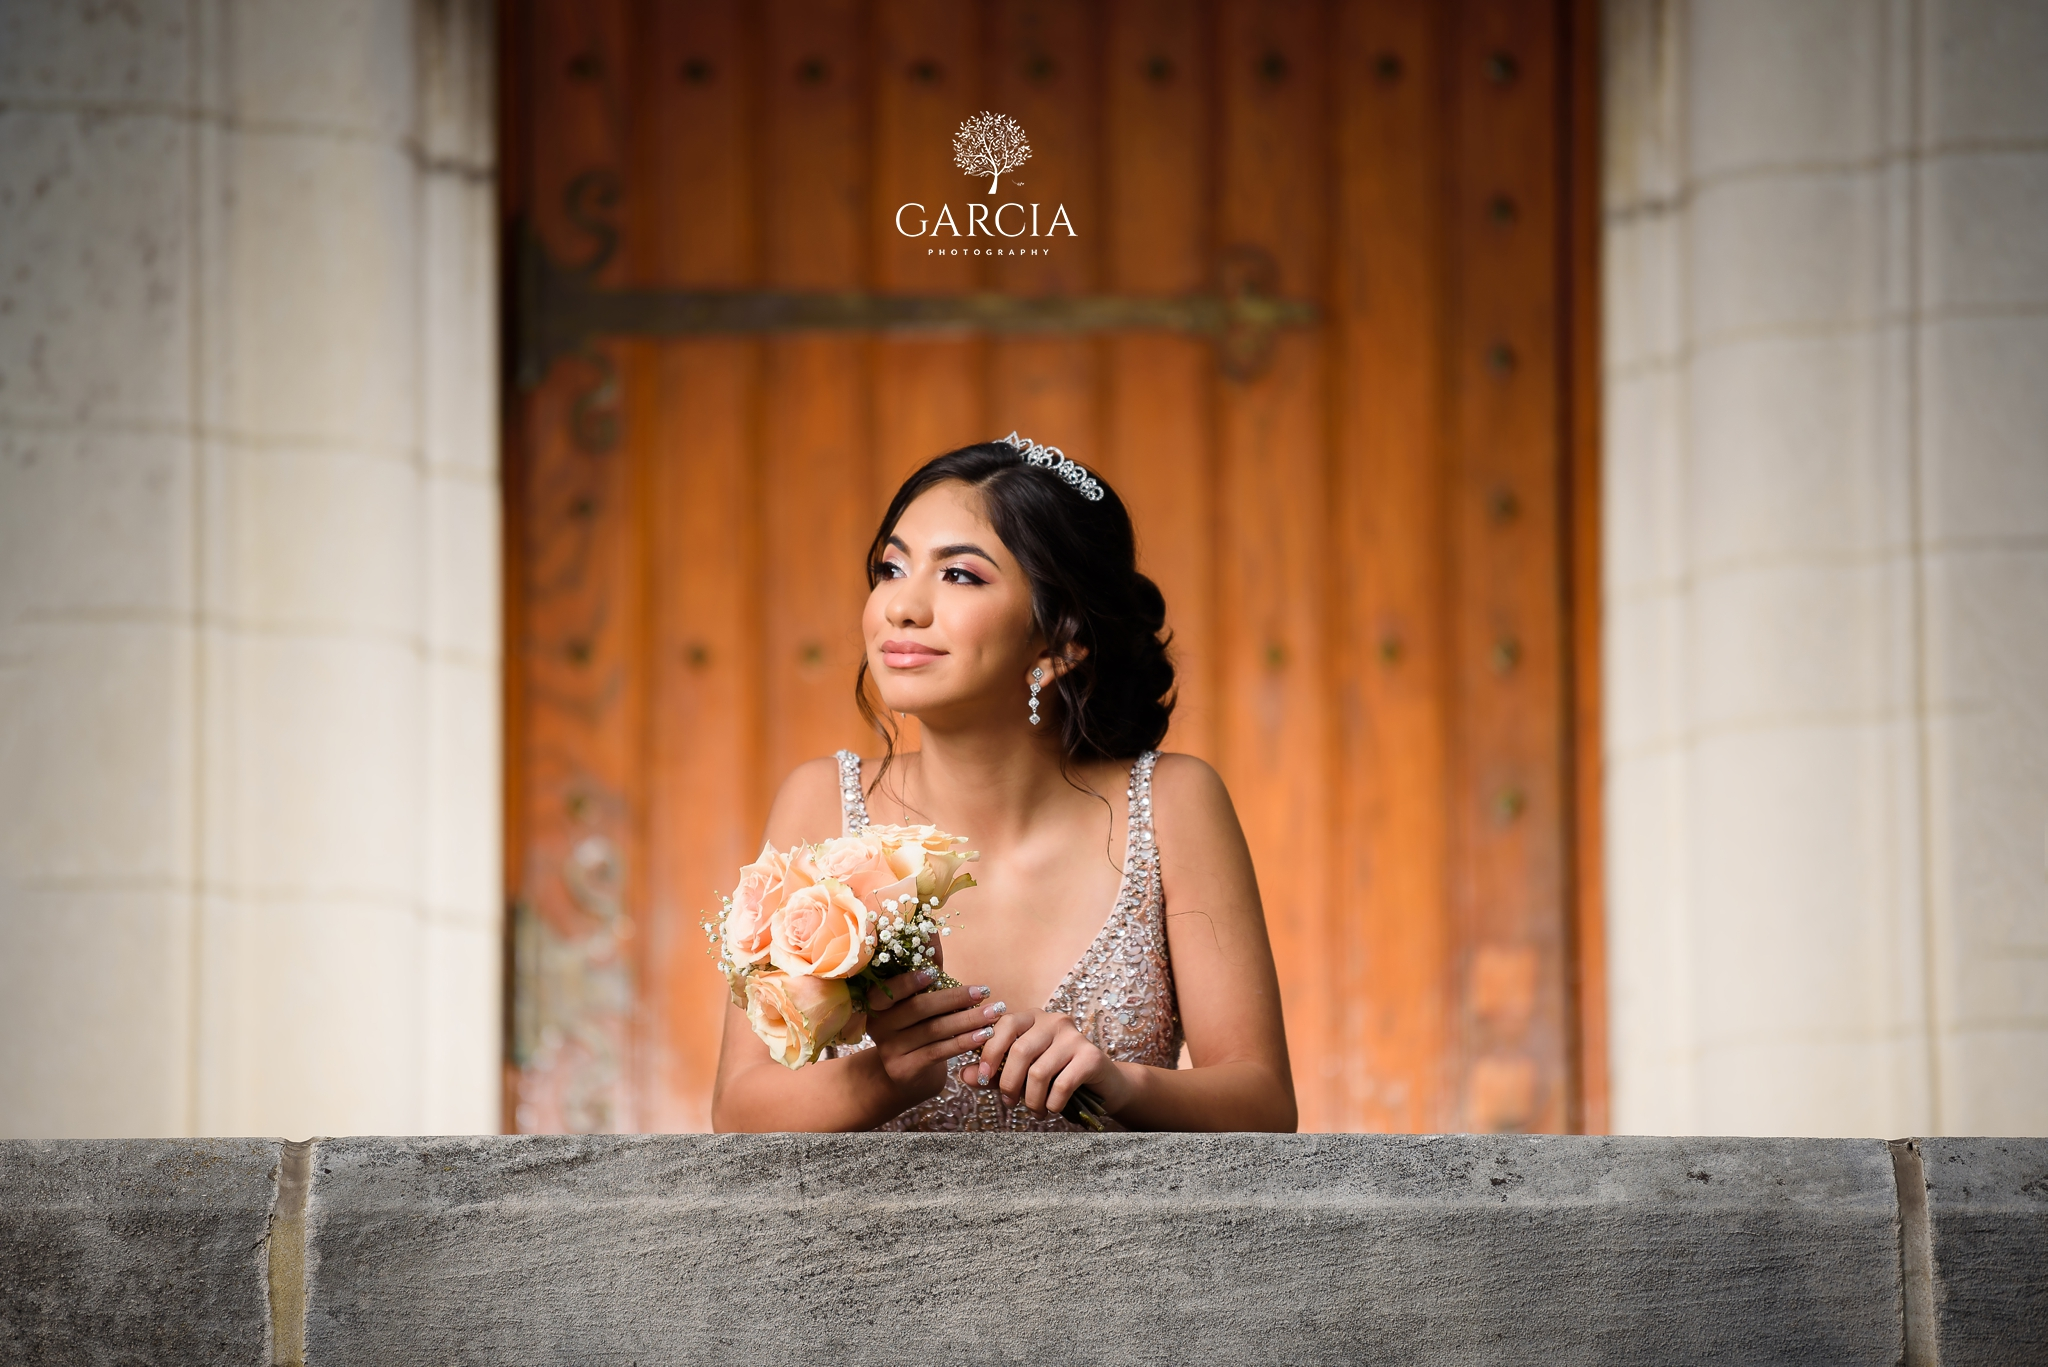 Nicole-Quince-Session-Garcia-Photography-4703.jpg